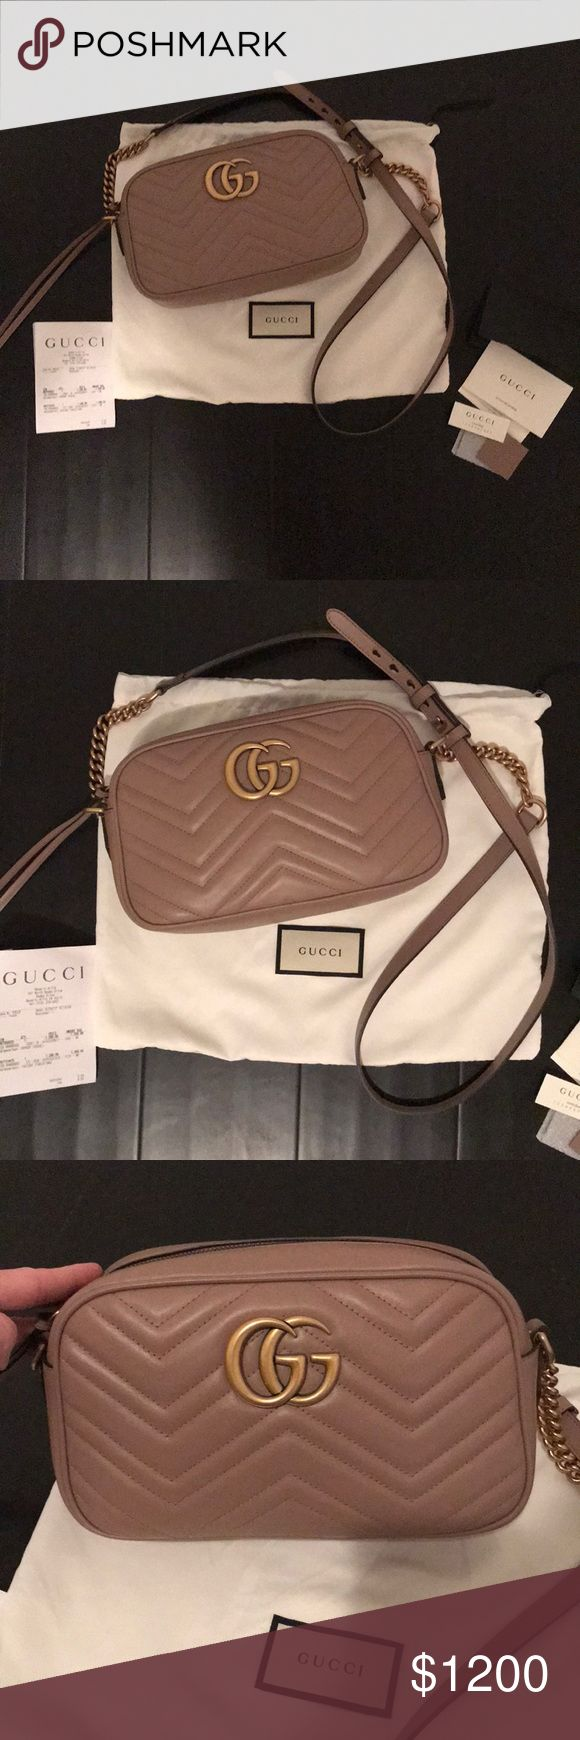 Gucci NEW GG Marmont small matelassé shoulder bag The small GG Marmont chain shoulder bag has a softly structured shape and a zip top closure with the Double G hardware. The chain shoulder strap has a leather shoulder detail. Made in matelassé leather with a chevron design. Color is Taupe- a nice pink neutral nude. Used once with no signs of wear! Beautiful purse, this is the small not the mini. Fits a wallet iPhone plus lipstick etc. Not sure if I will sell at this time, I am trying to…